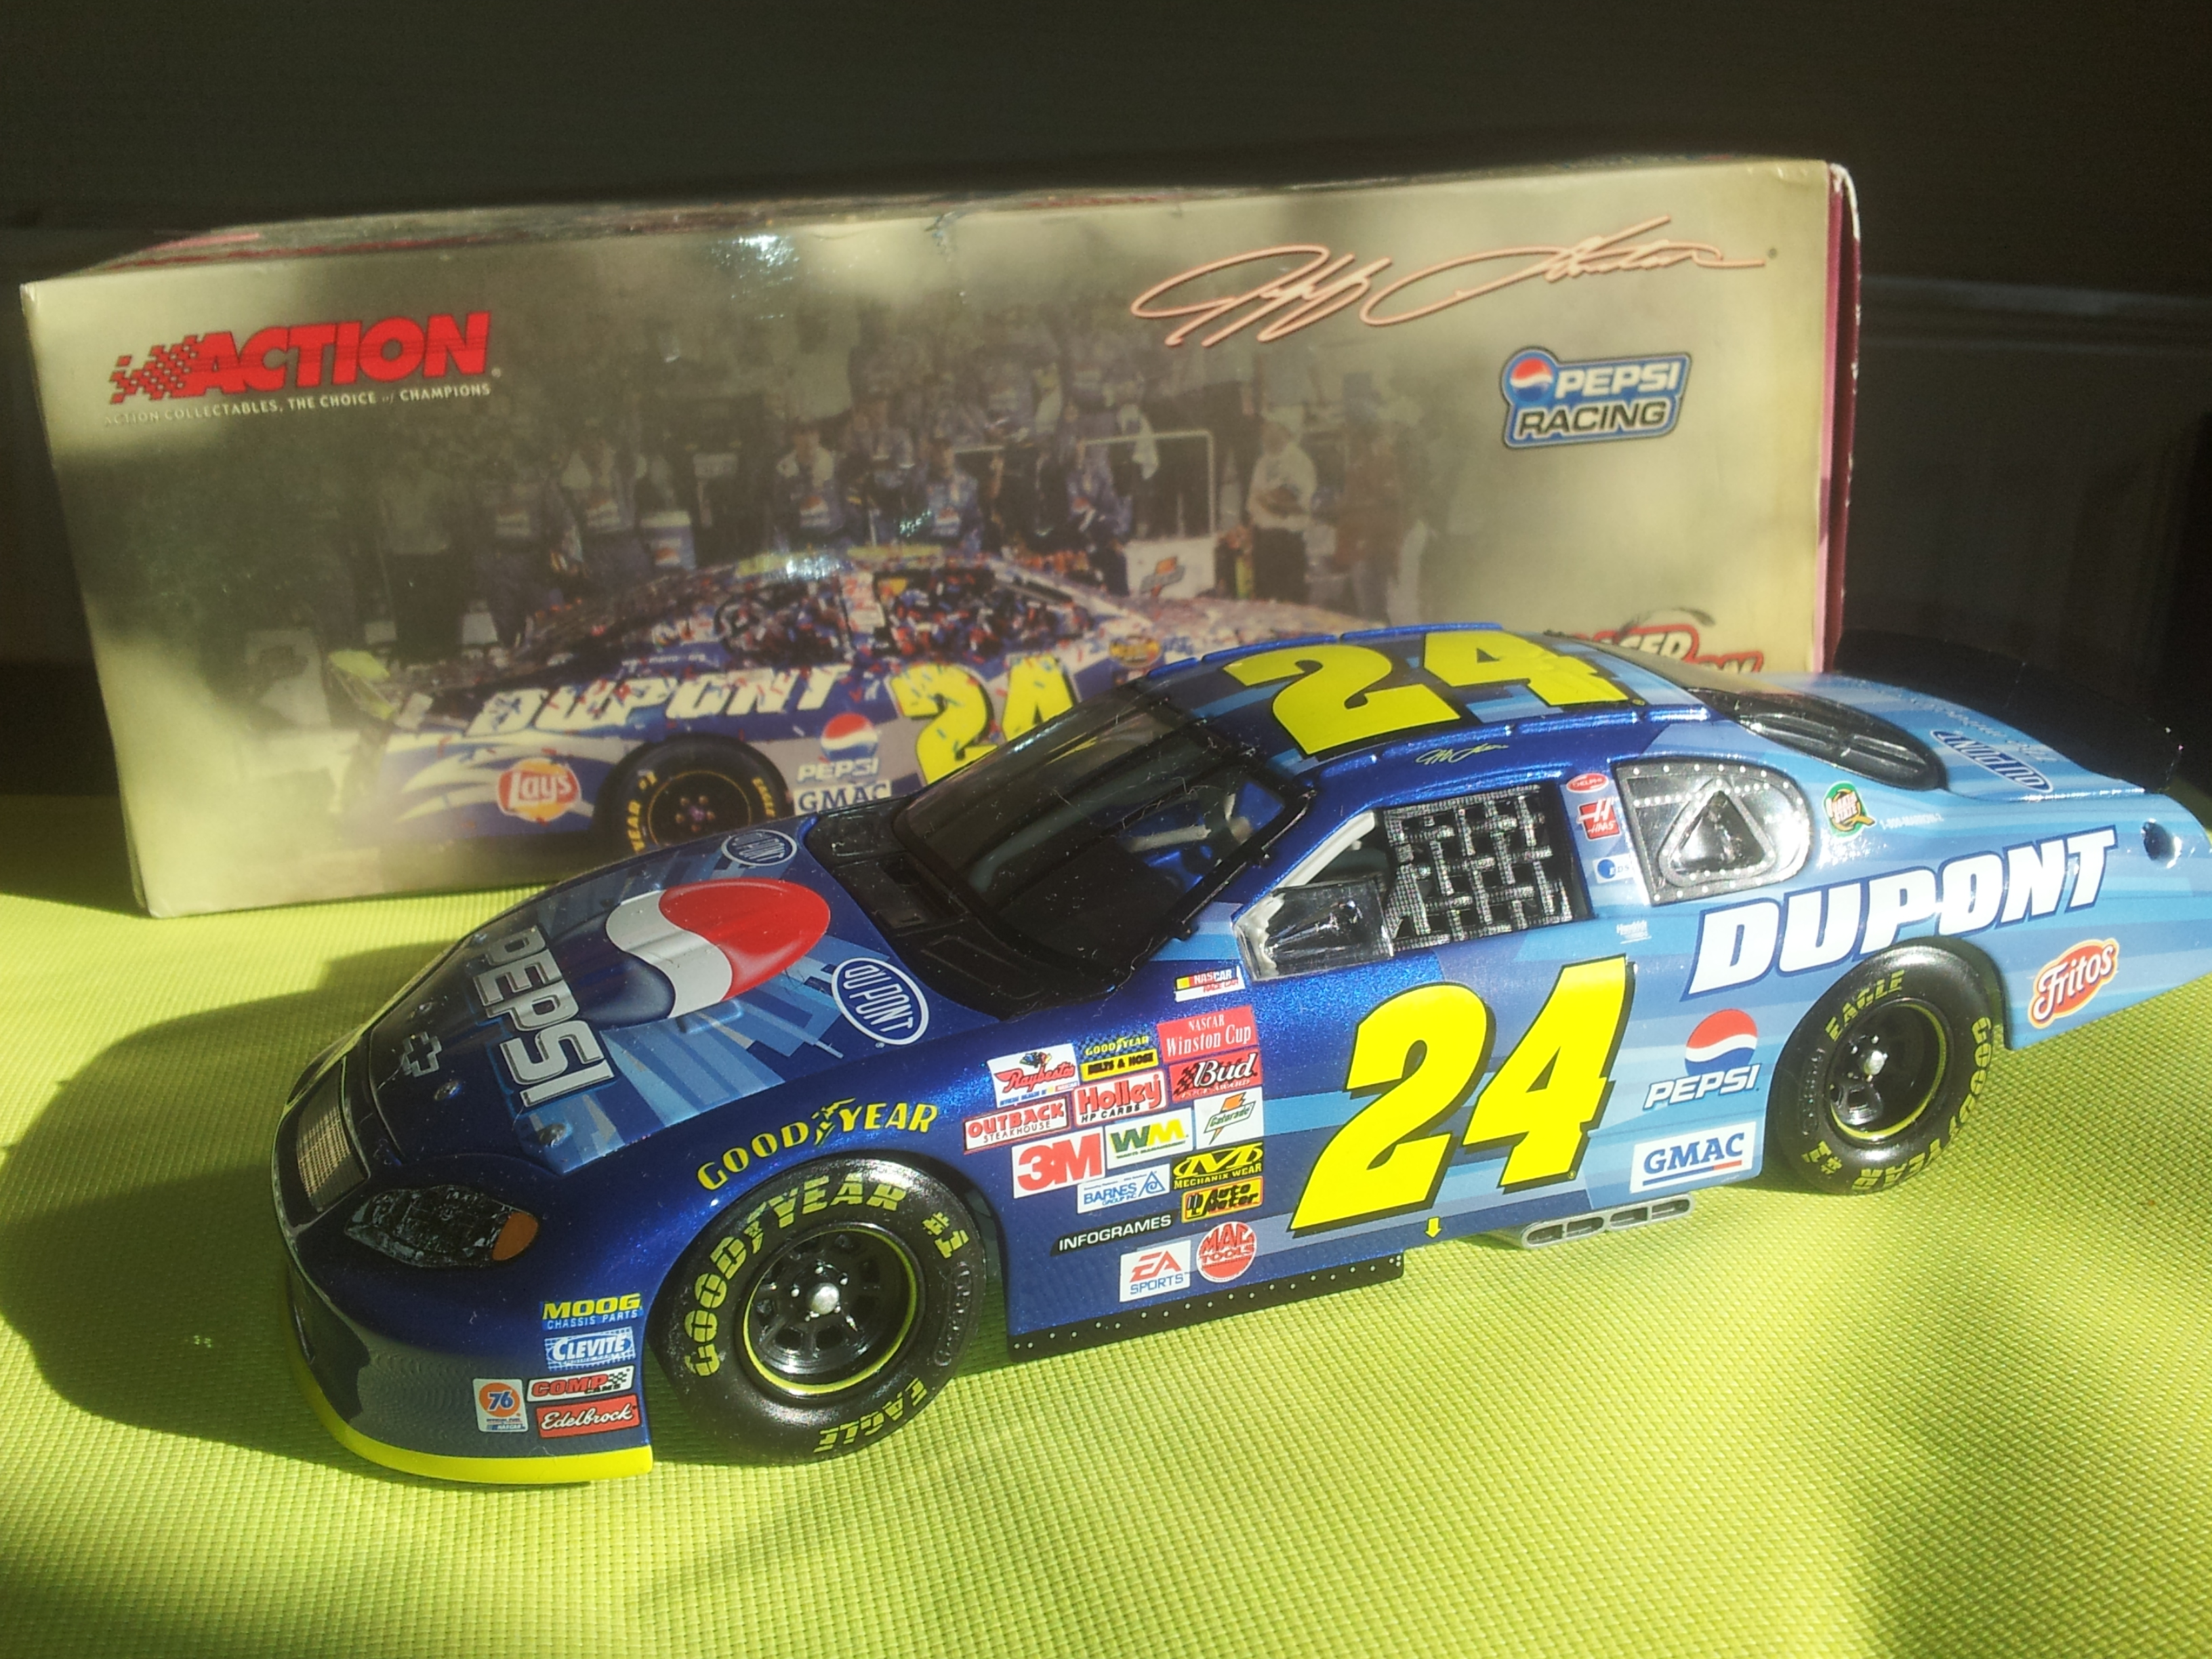 Nascar & Jeff Gordon's tribute 84663620150207132737